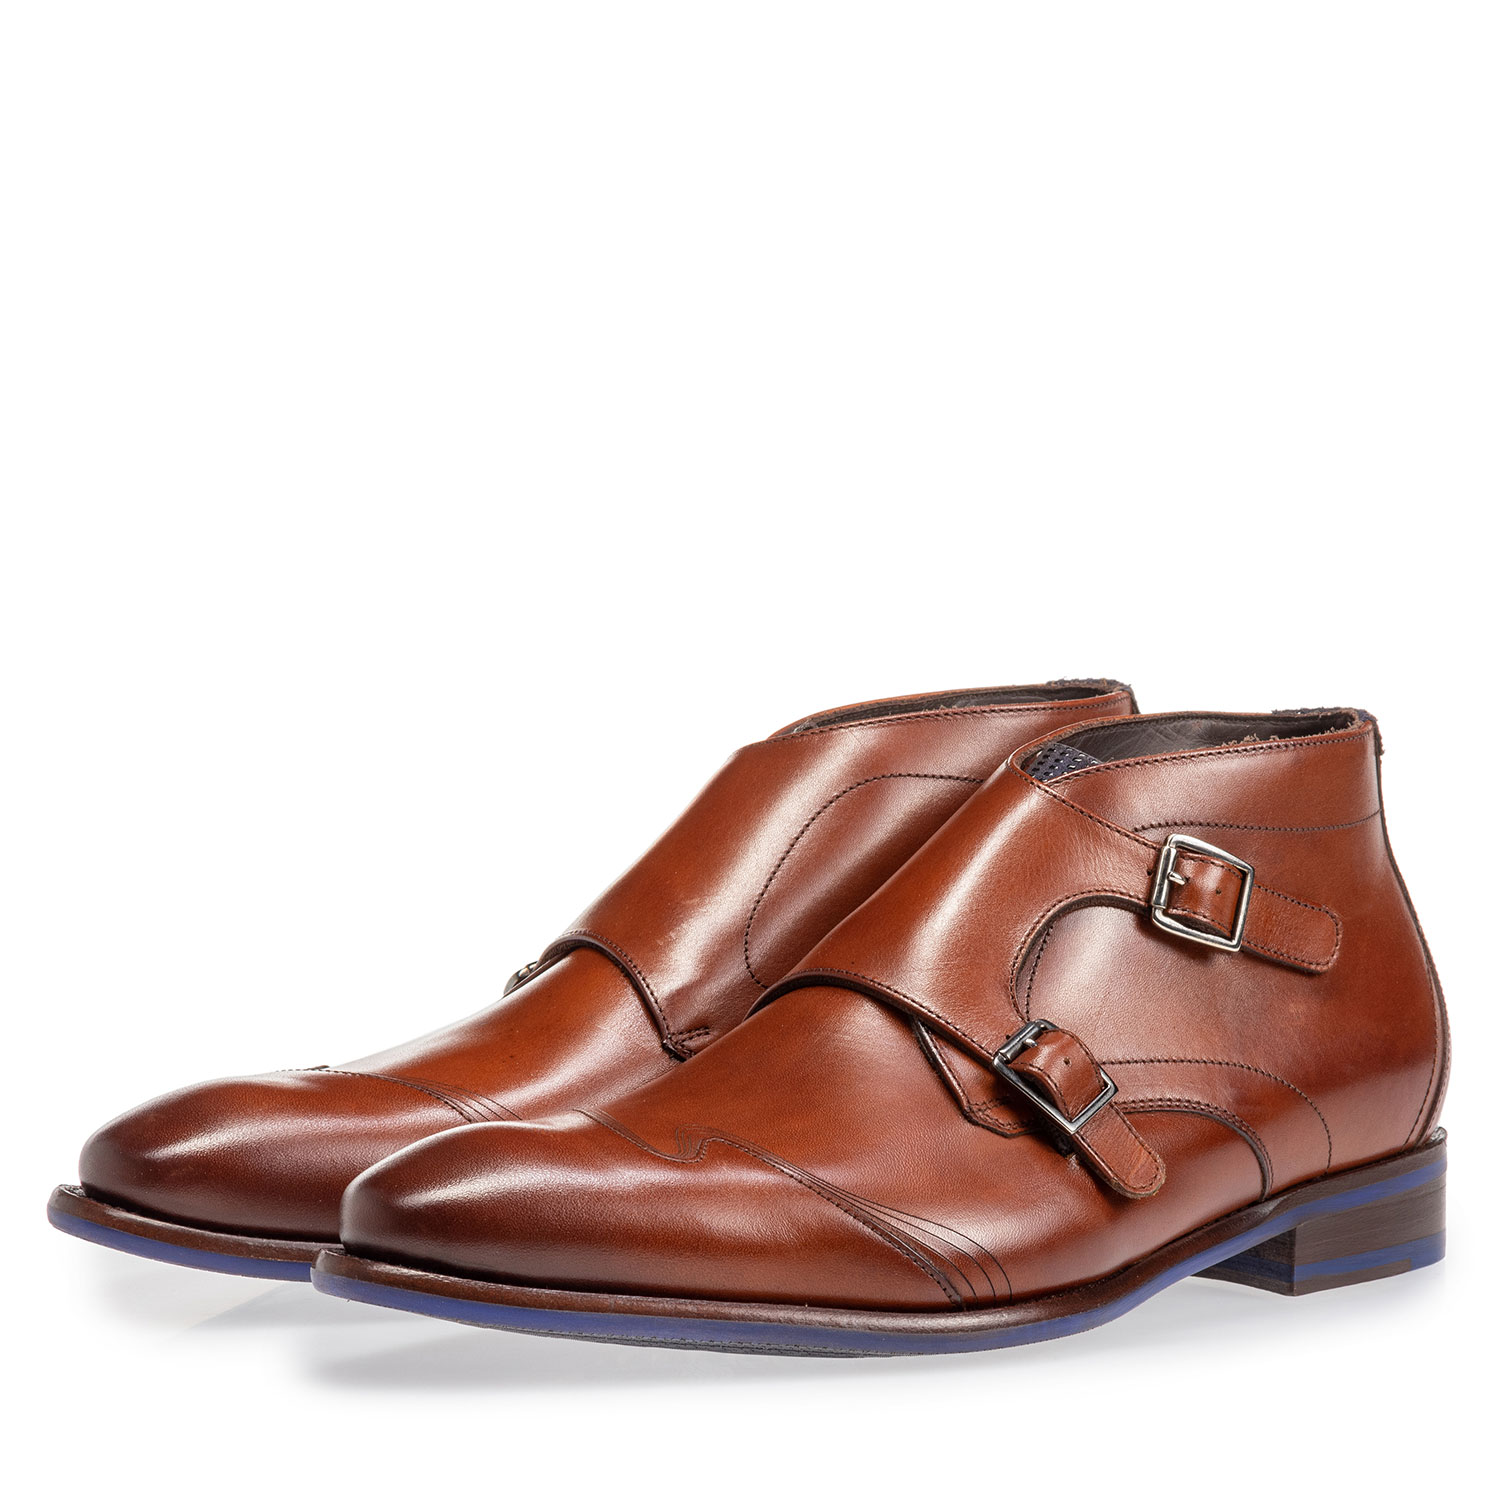 20197/00 - Buckle shoe calf leather cognac